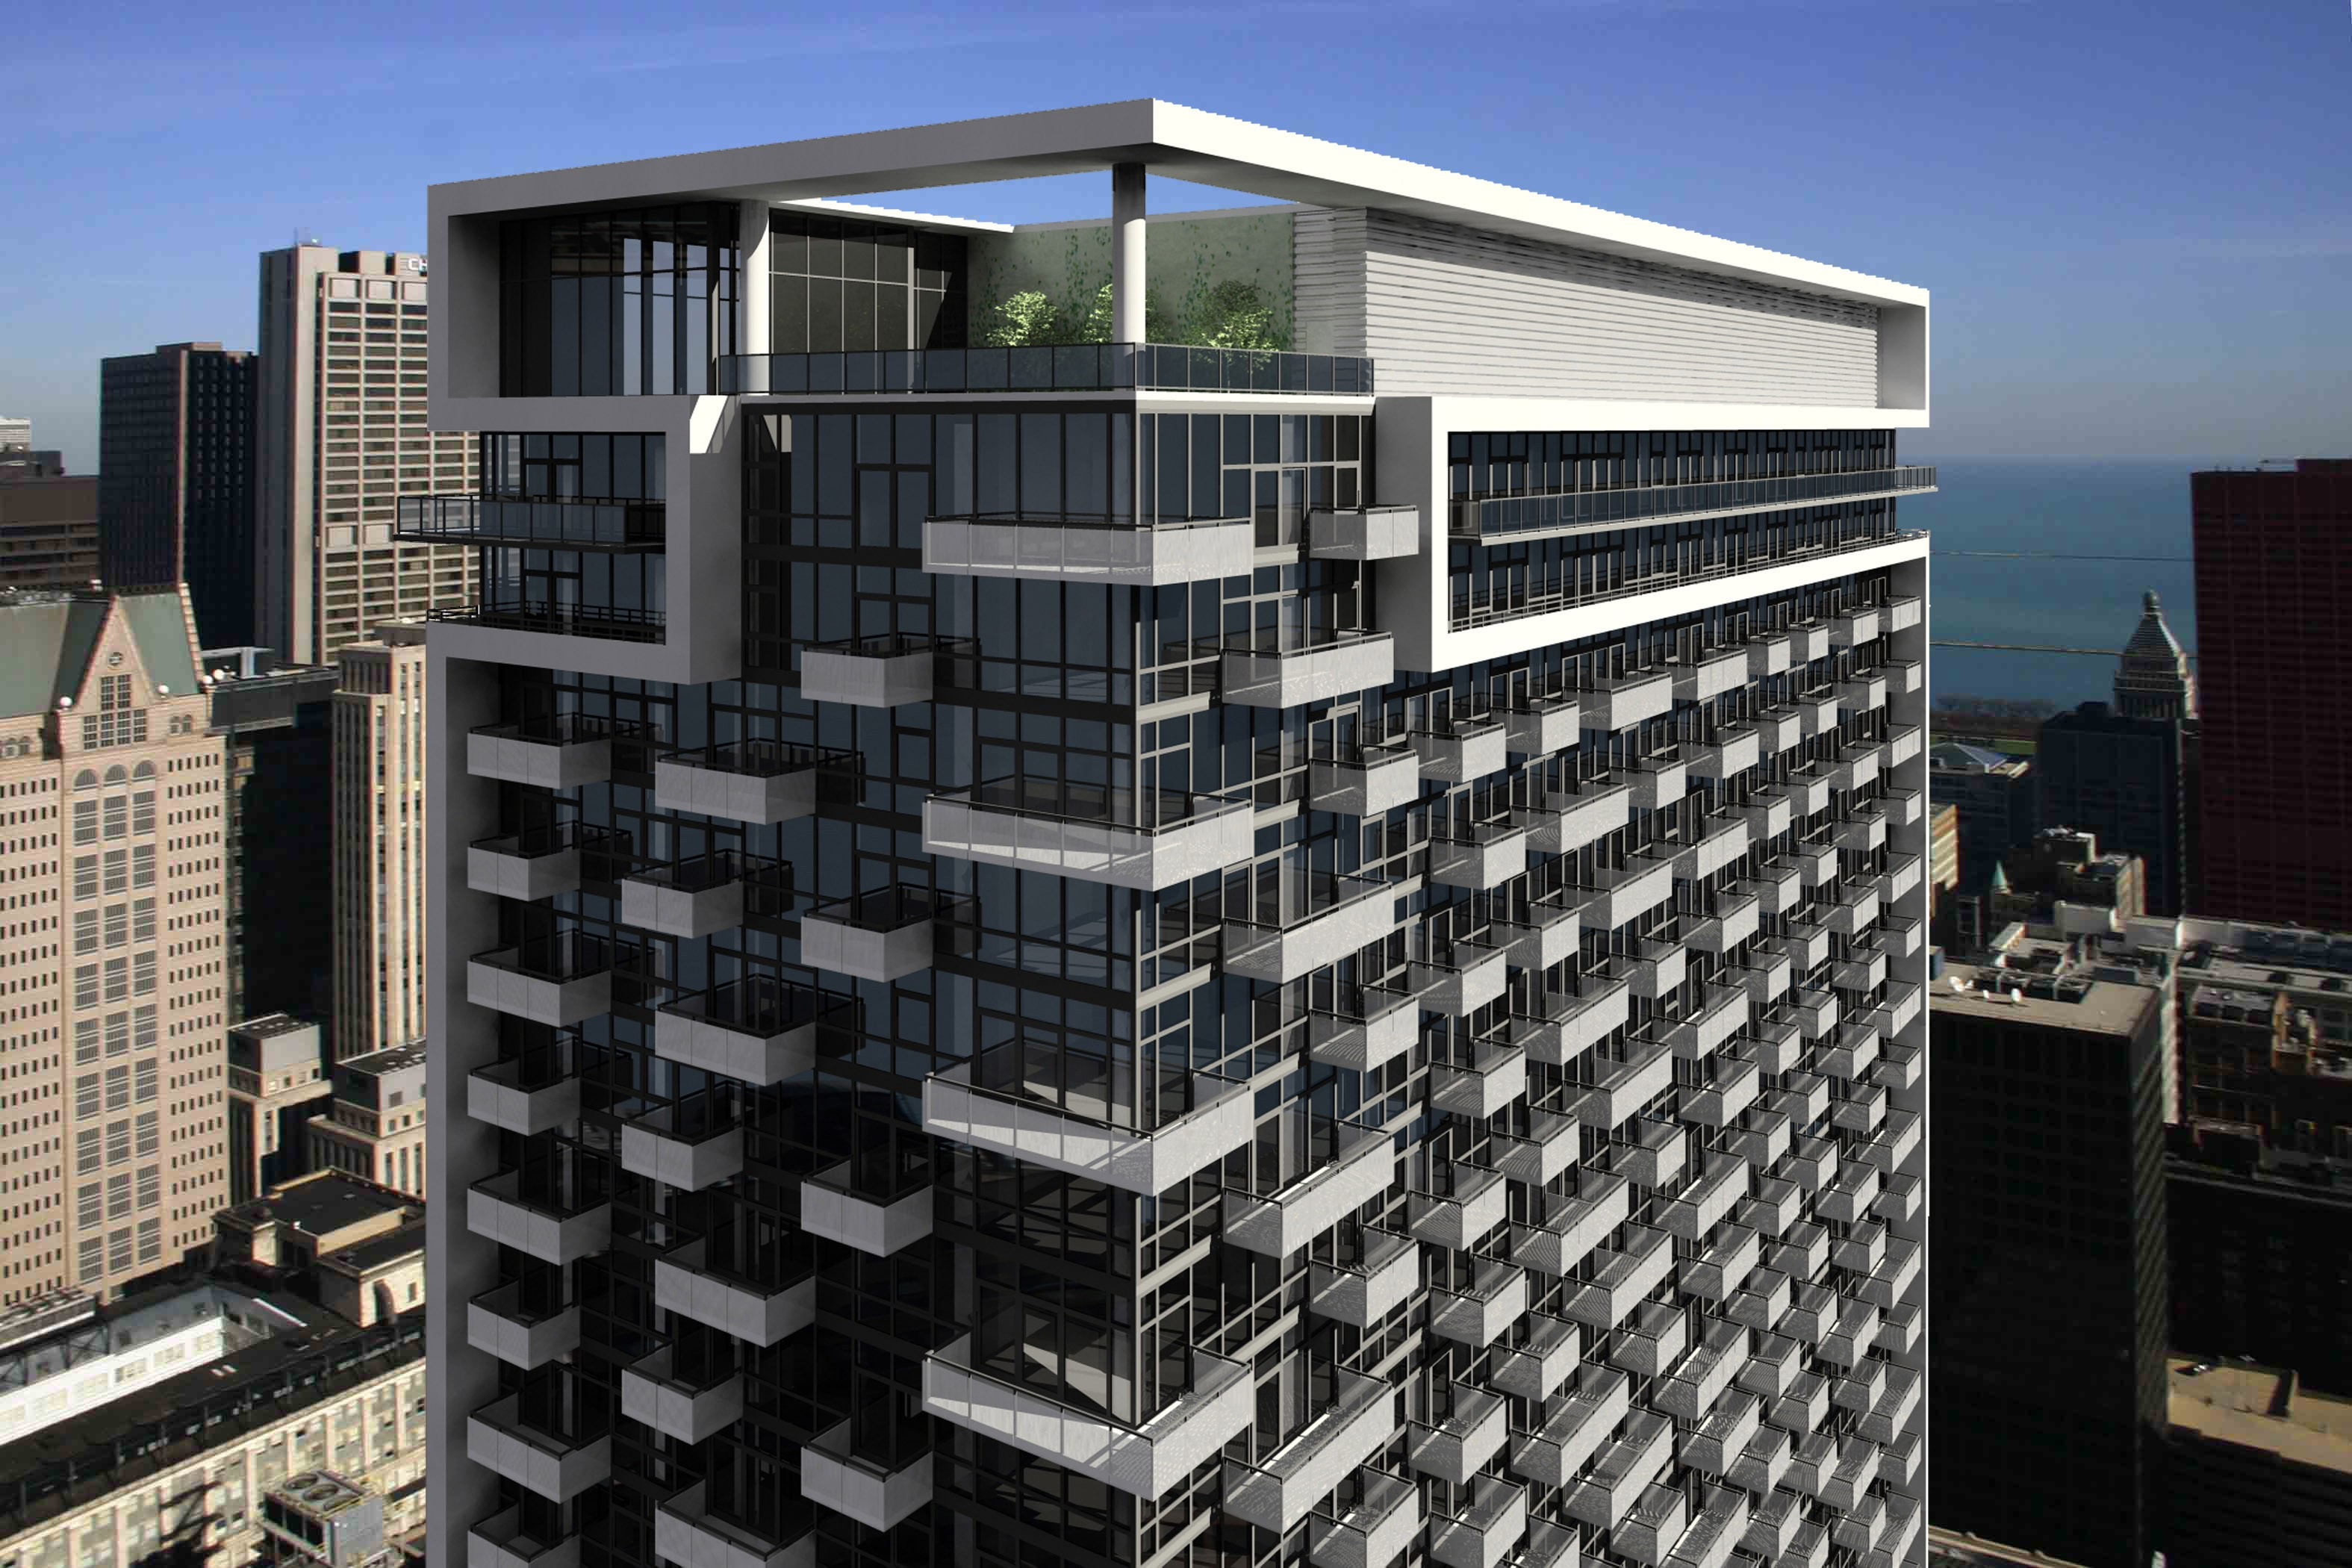 Lower prices, closing credits, and broker bonuses on 235 Van Buren's condos